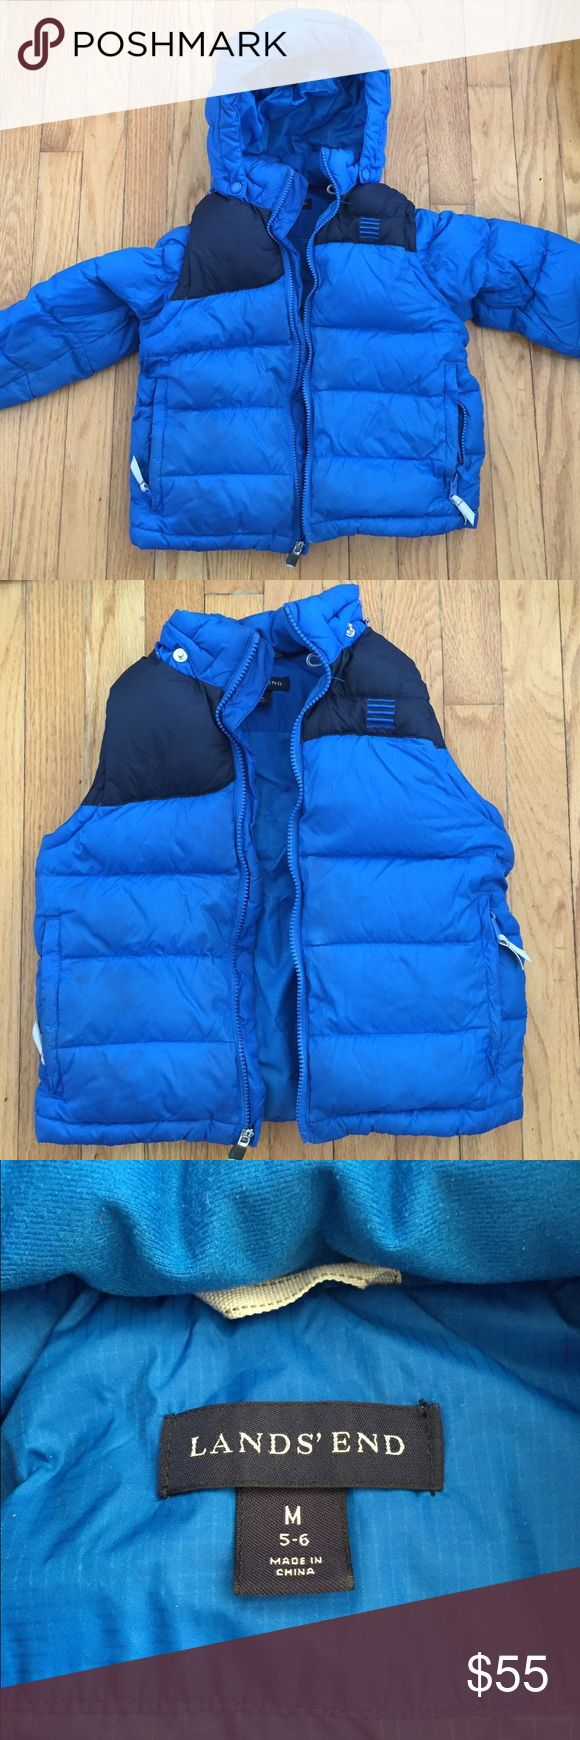 Boys Lands' End Winter Puffer Jacket Vest Combo Boys Lands' End Winter Puffer Jacket Vest Combo. Royal blue nylon putter filled with goose down. Sleeves zip off to make jacket a vest. Good zips on and off too. Great jacket for your little guy! Good used condition. No damage. Size 5-6 (medium). Lands' End Jackets & Coats Puffers